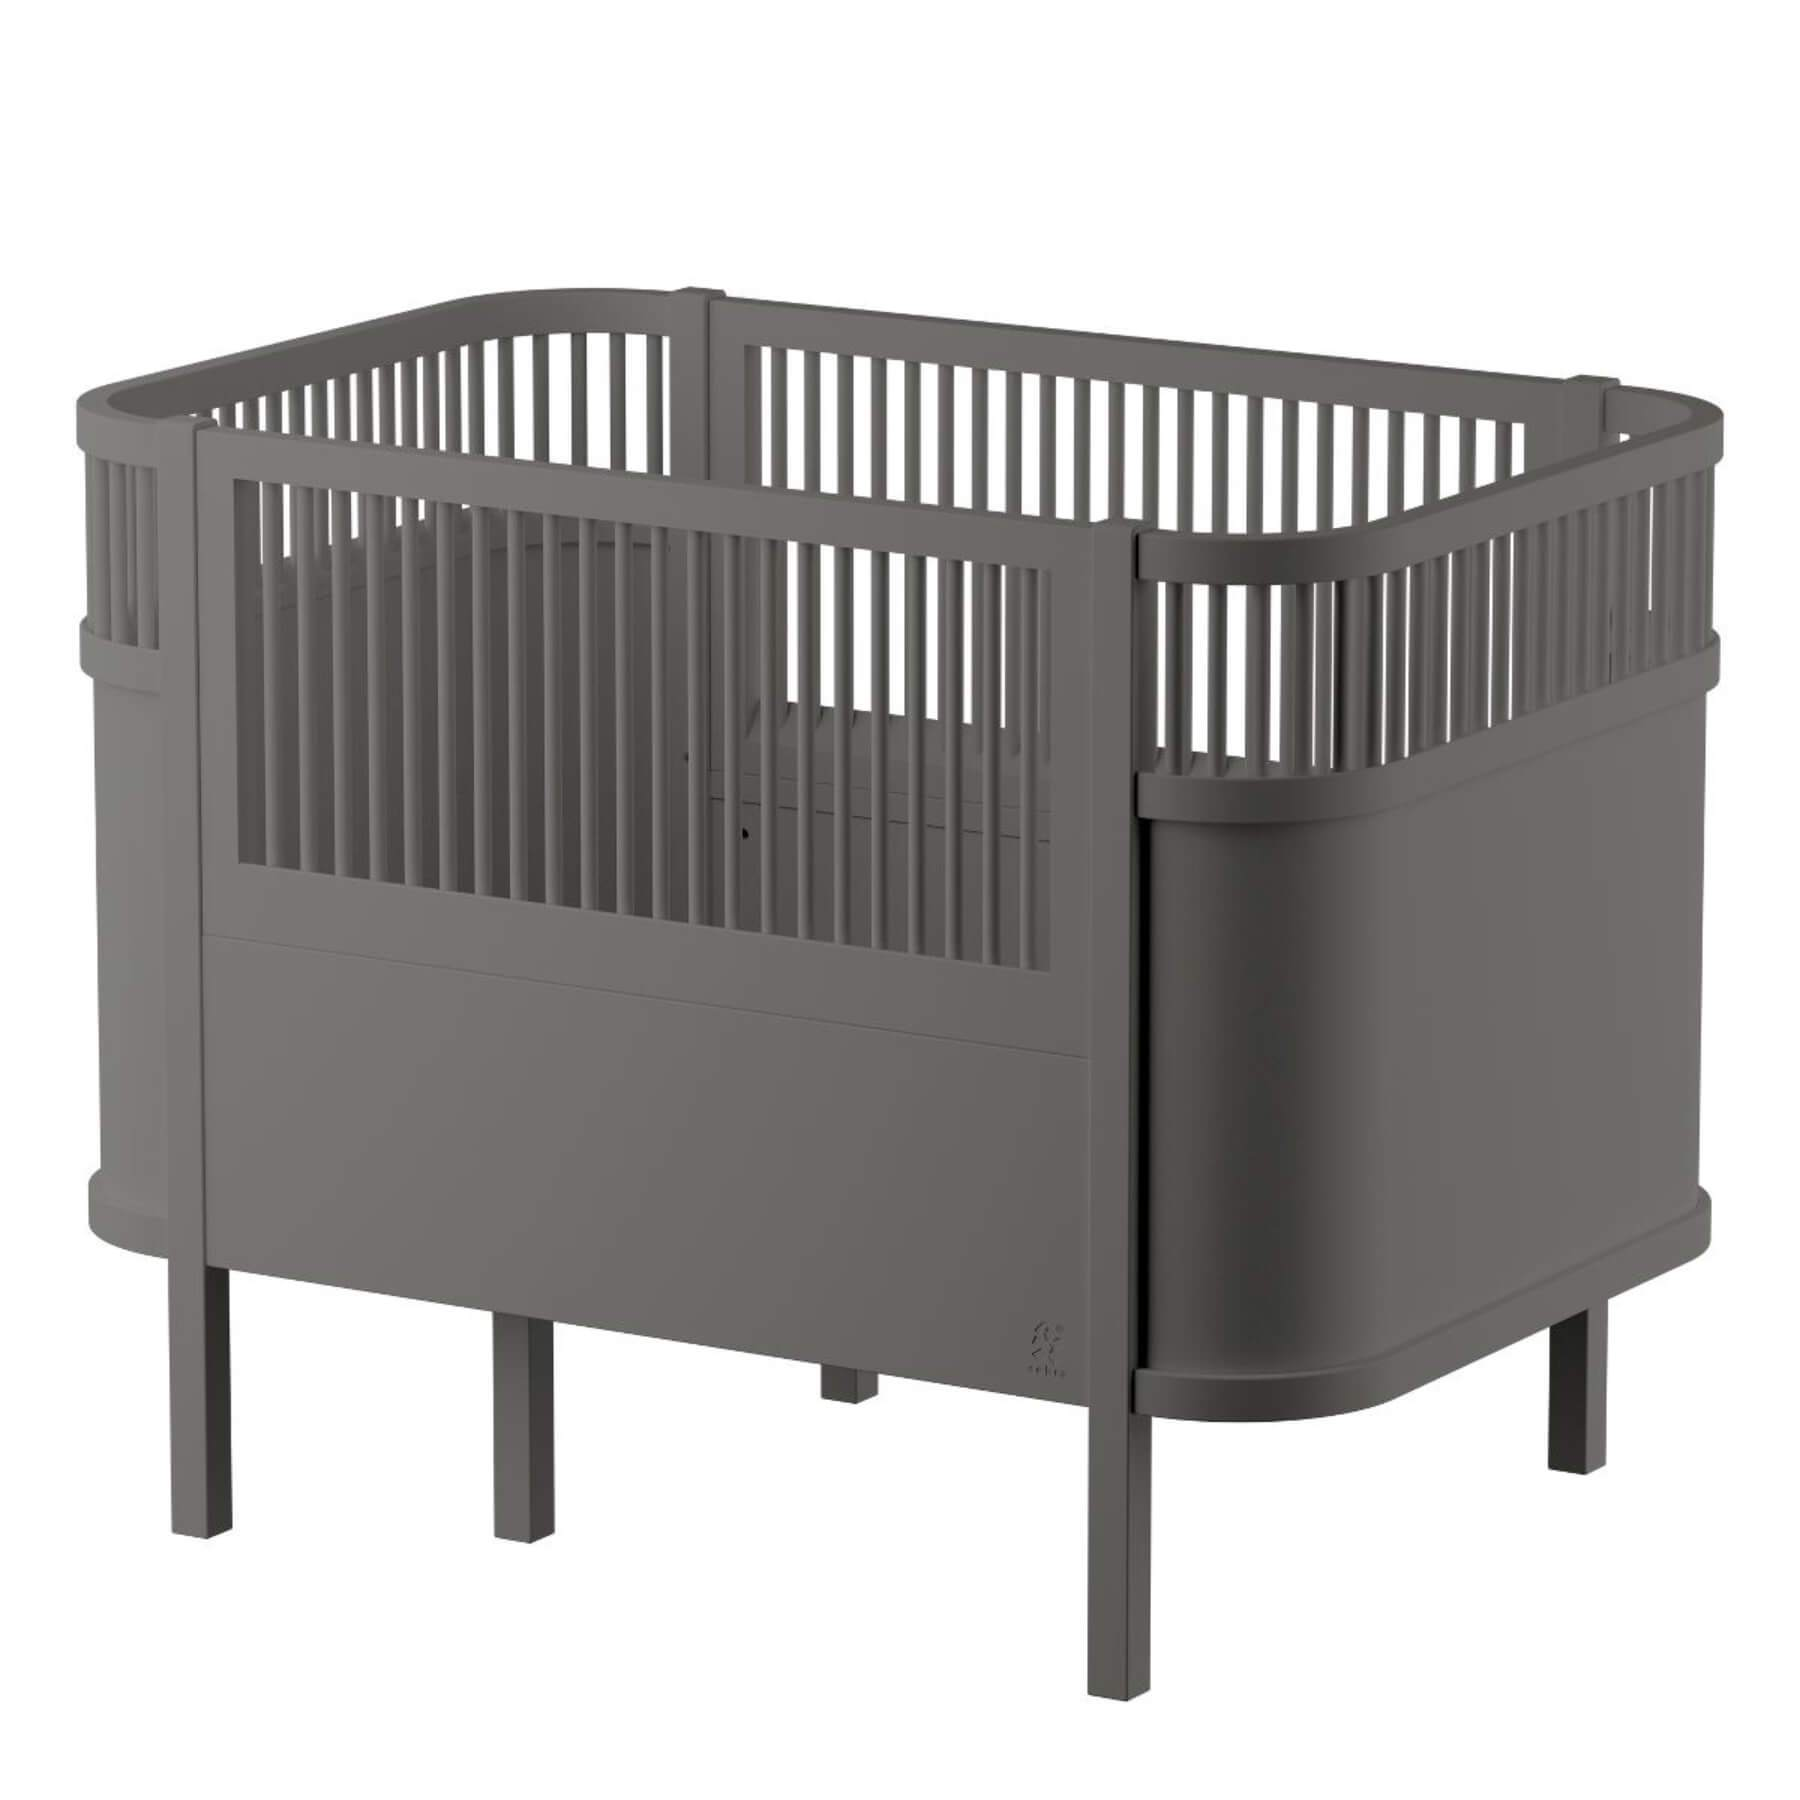 Sebra Baby & Junior Bed - Classic Grey